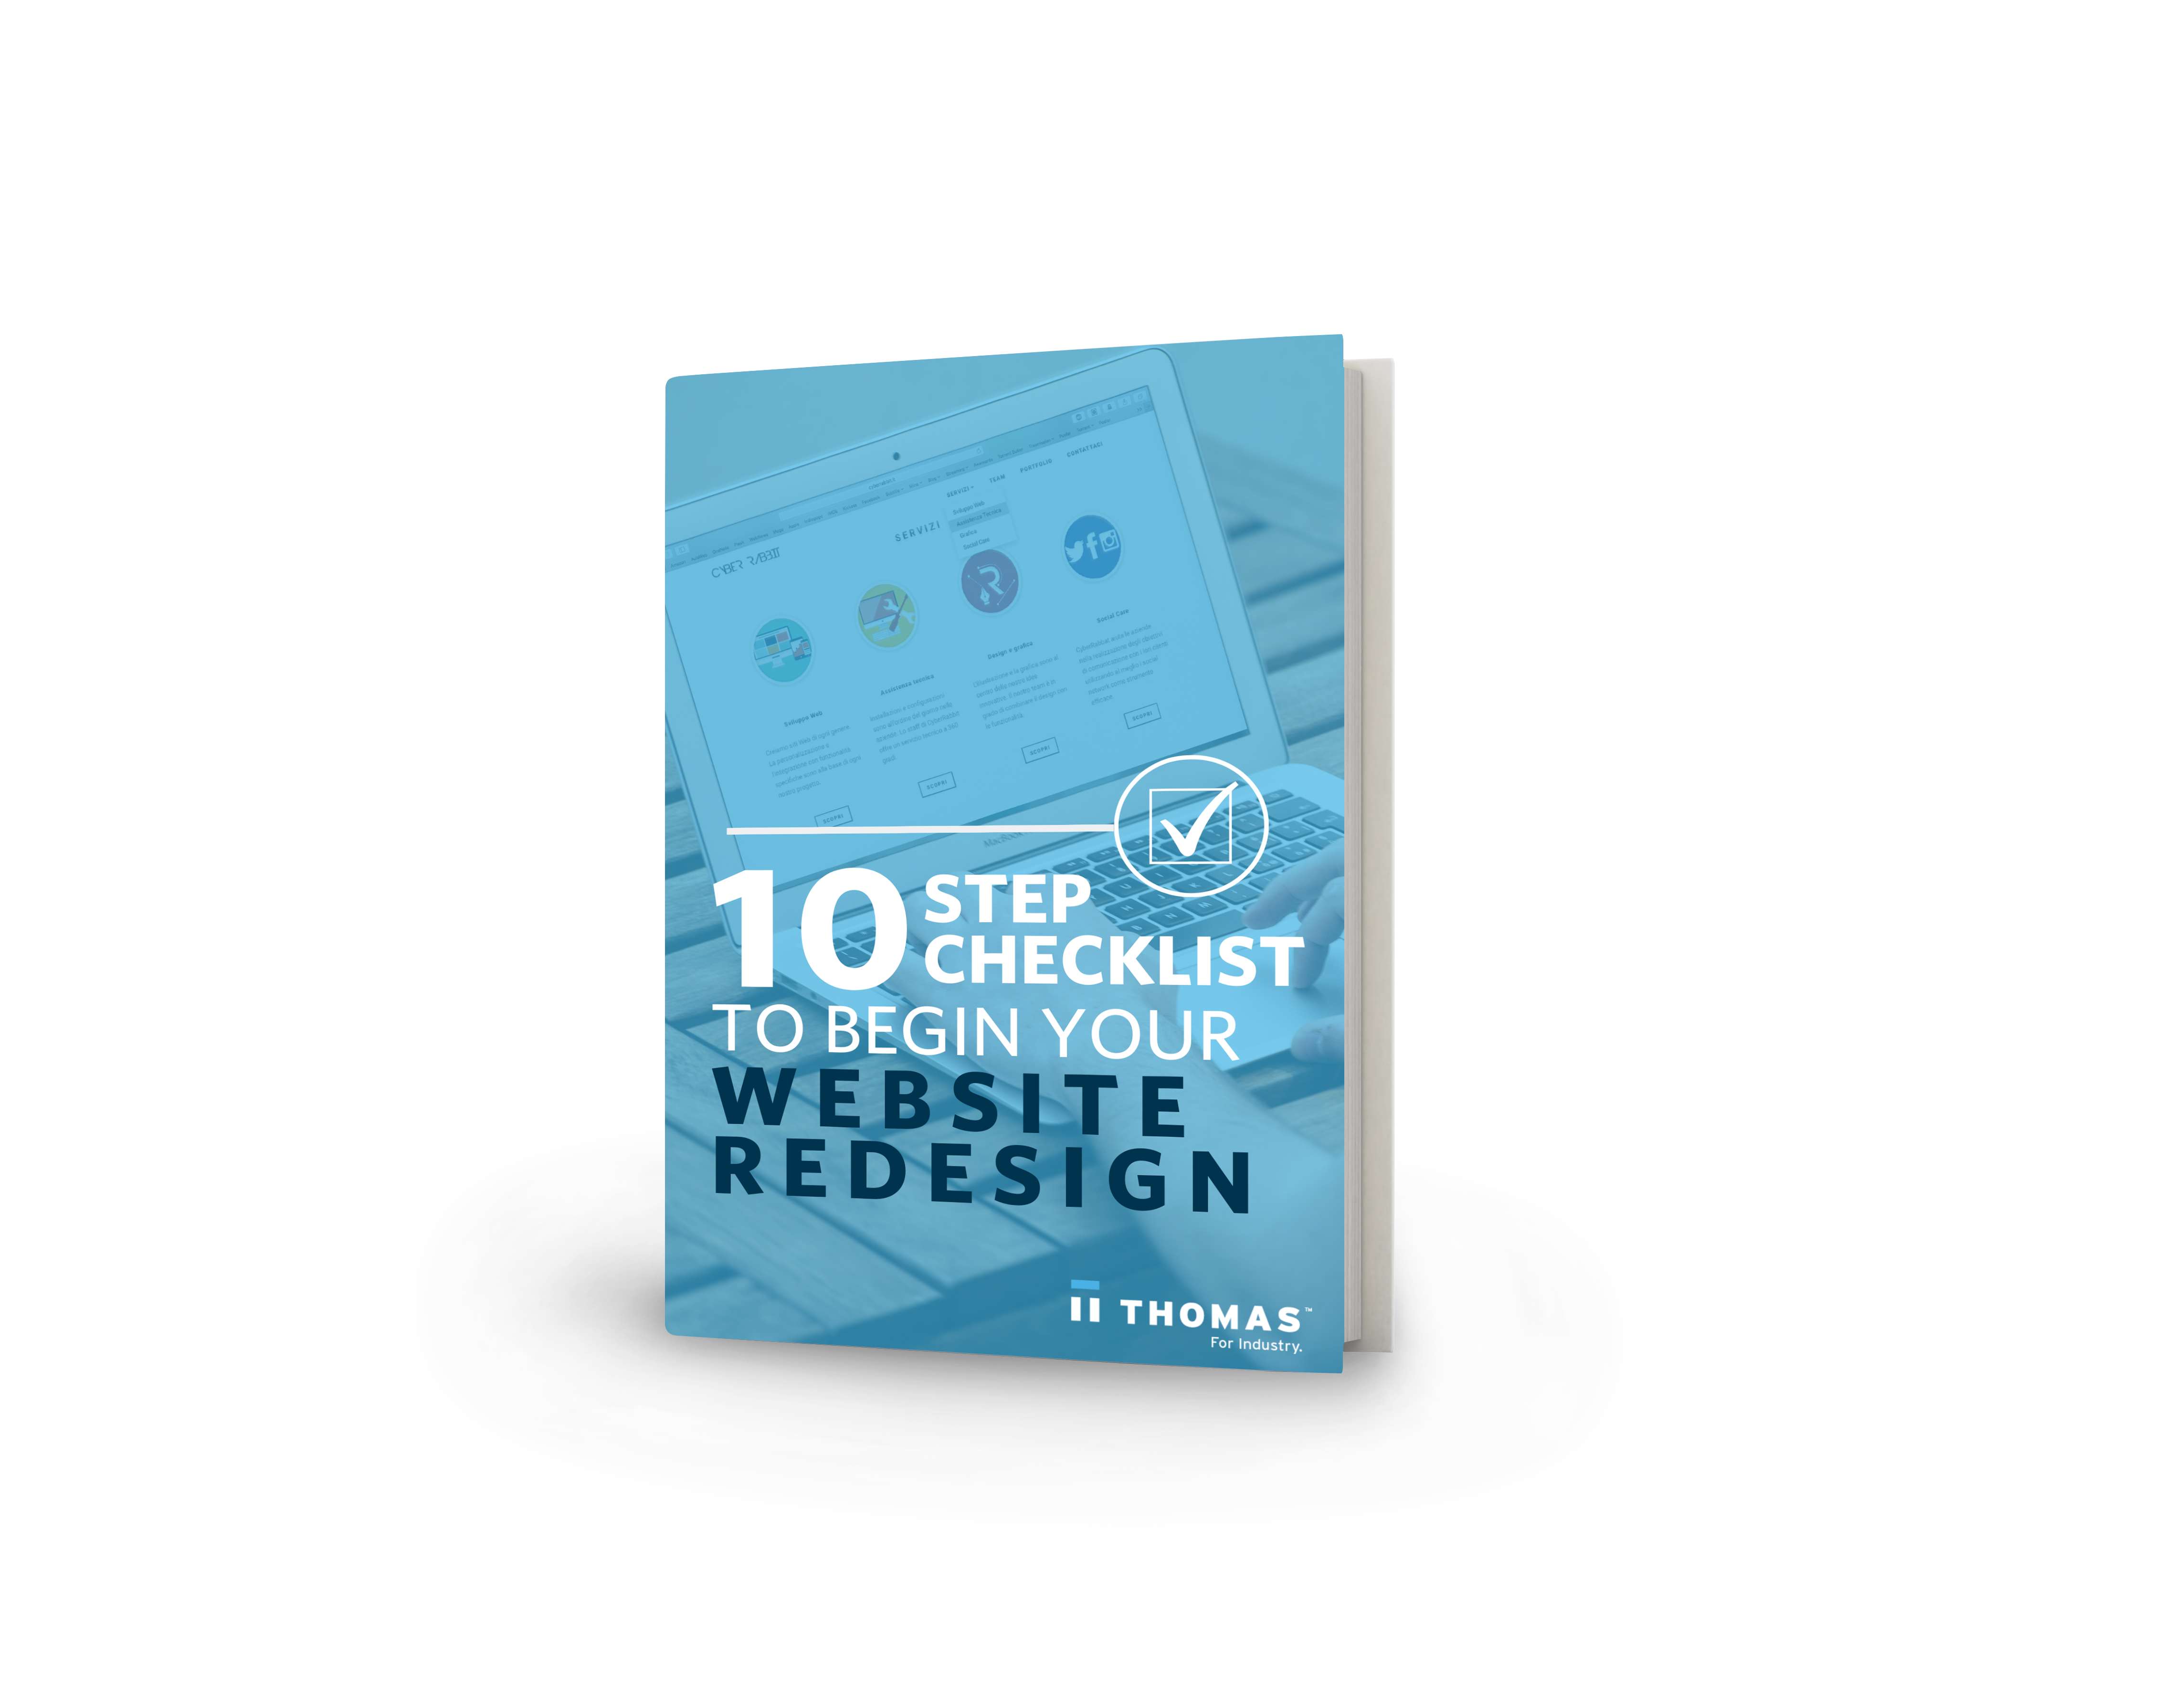 10-Step Checklist For Your Website Redesign